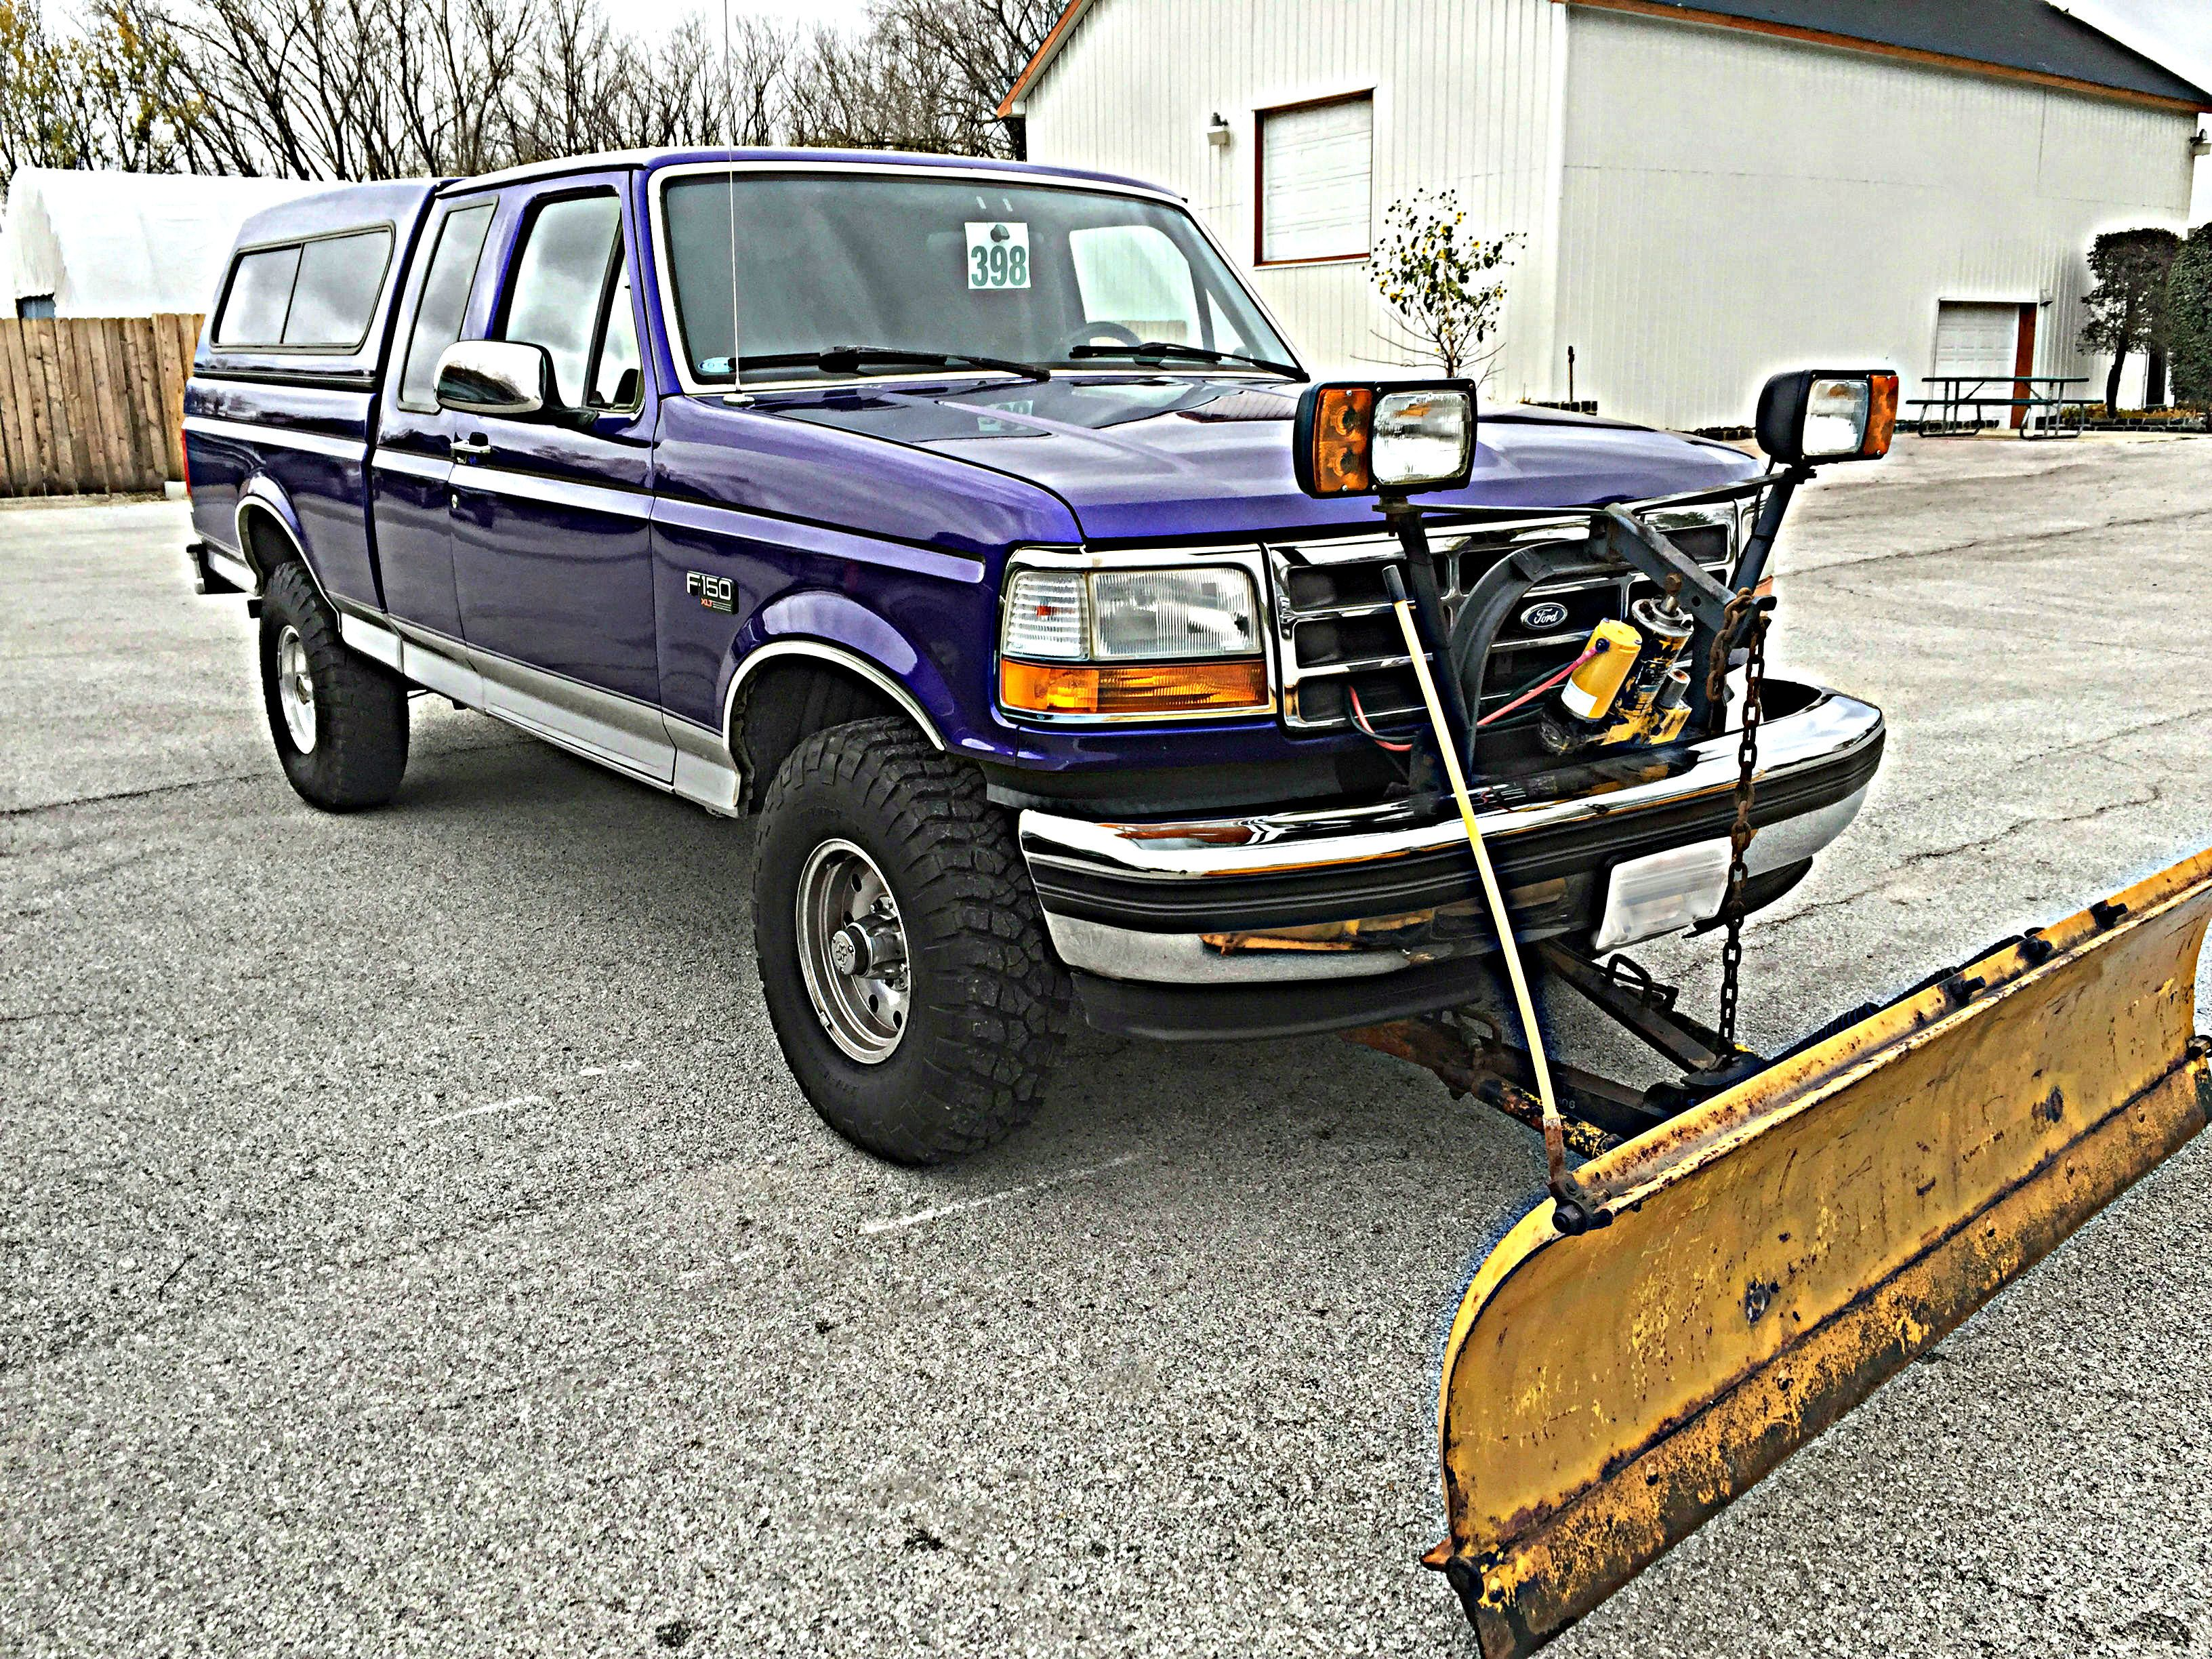 Awesome Paint Job On This F150 With A Meyer Plow Attached Monster Trucks Paint Job Snow Plow